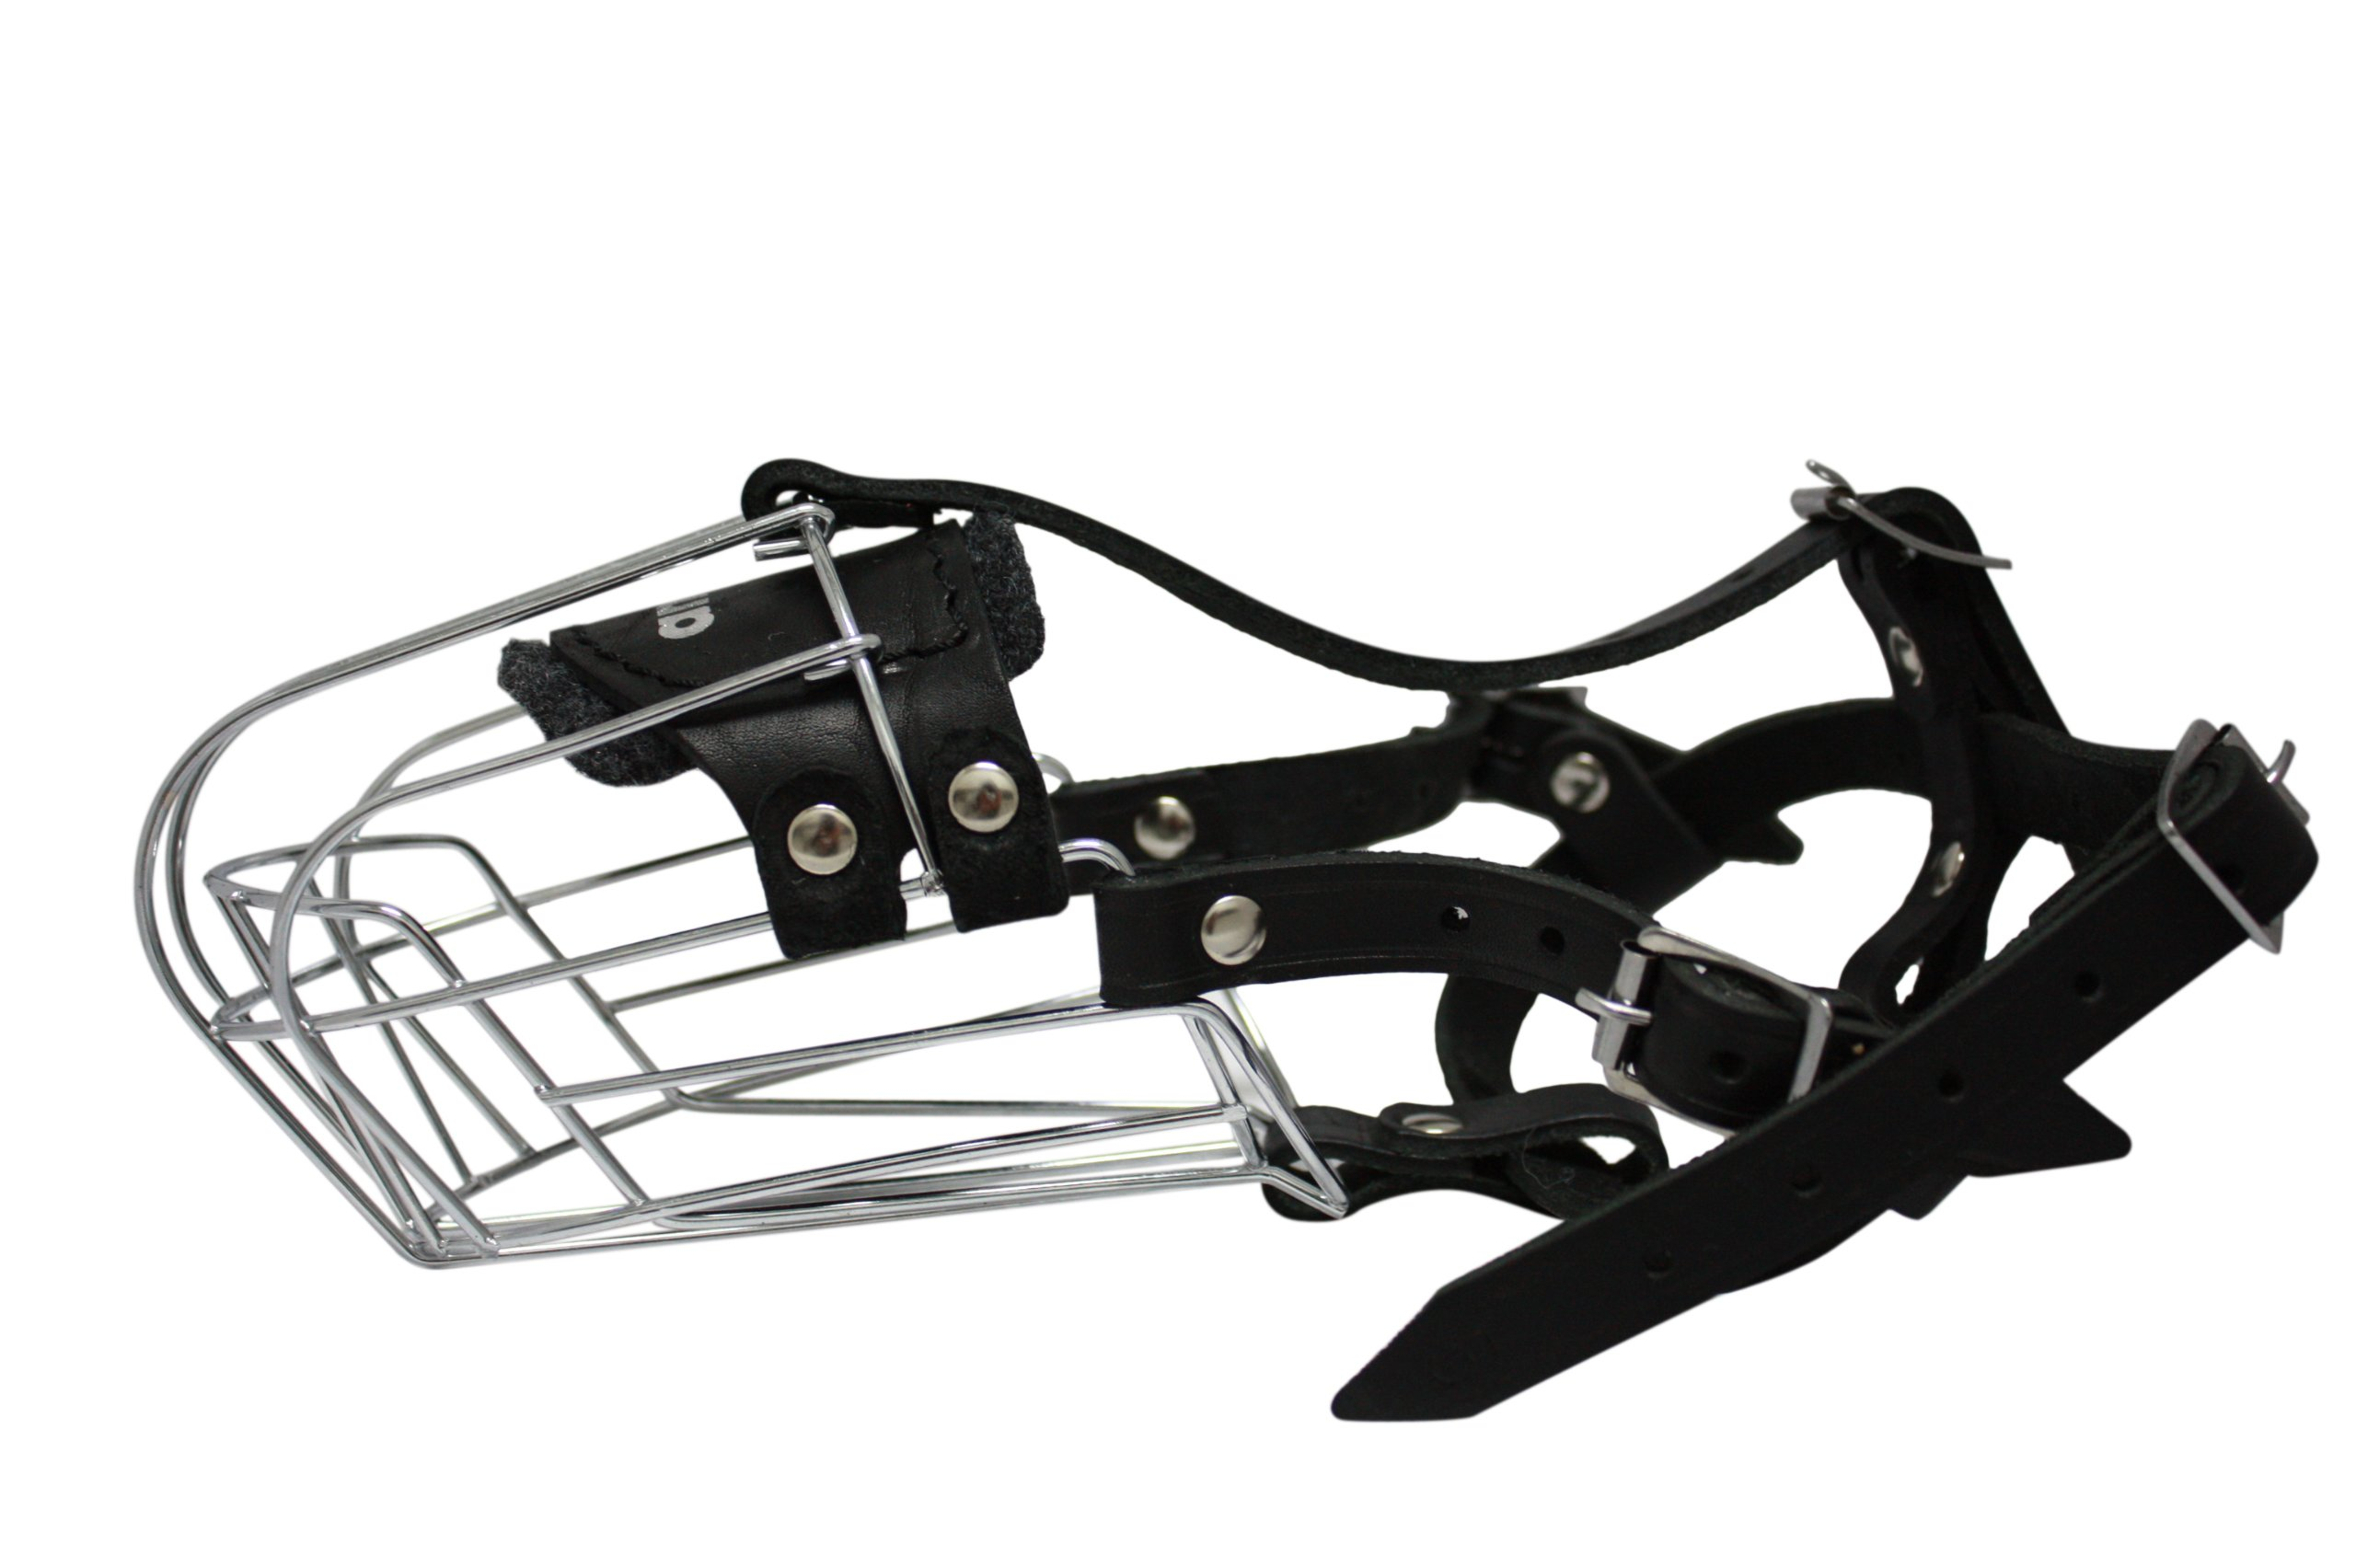 Wire Cage & Leather Muzzle (Miami). Size 5, Black. 11'' circumference, 4.25'' length. Best fits mid-size dogs like: Schnauzers, Weimaraners